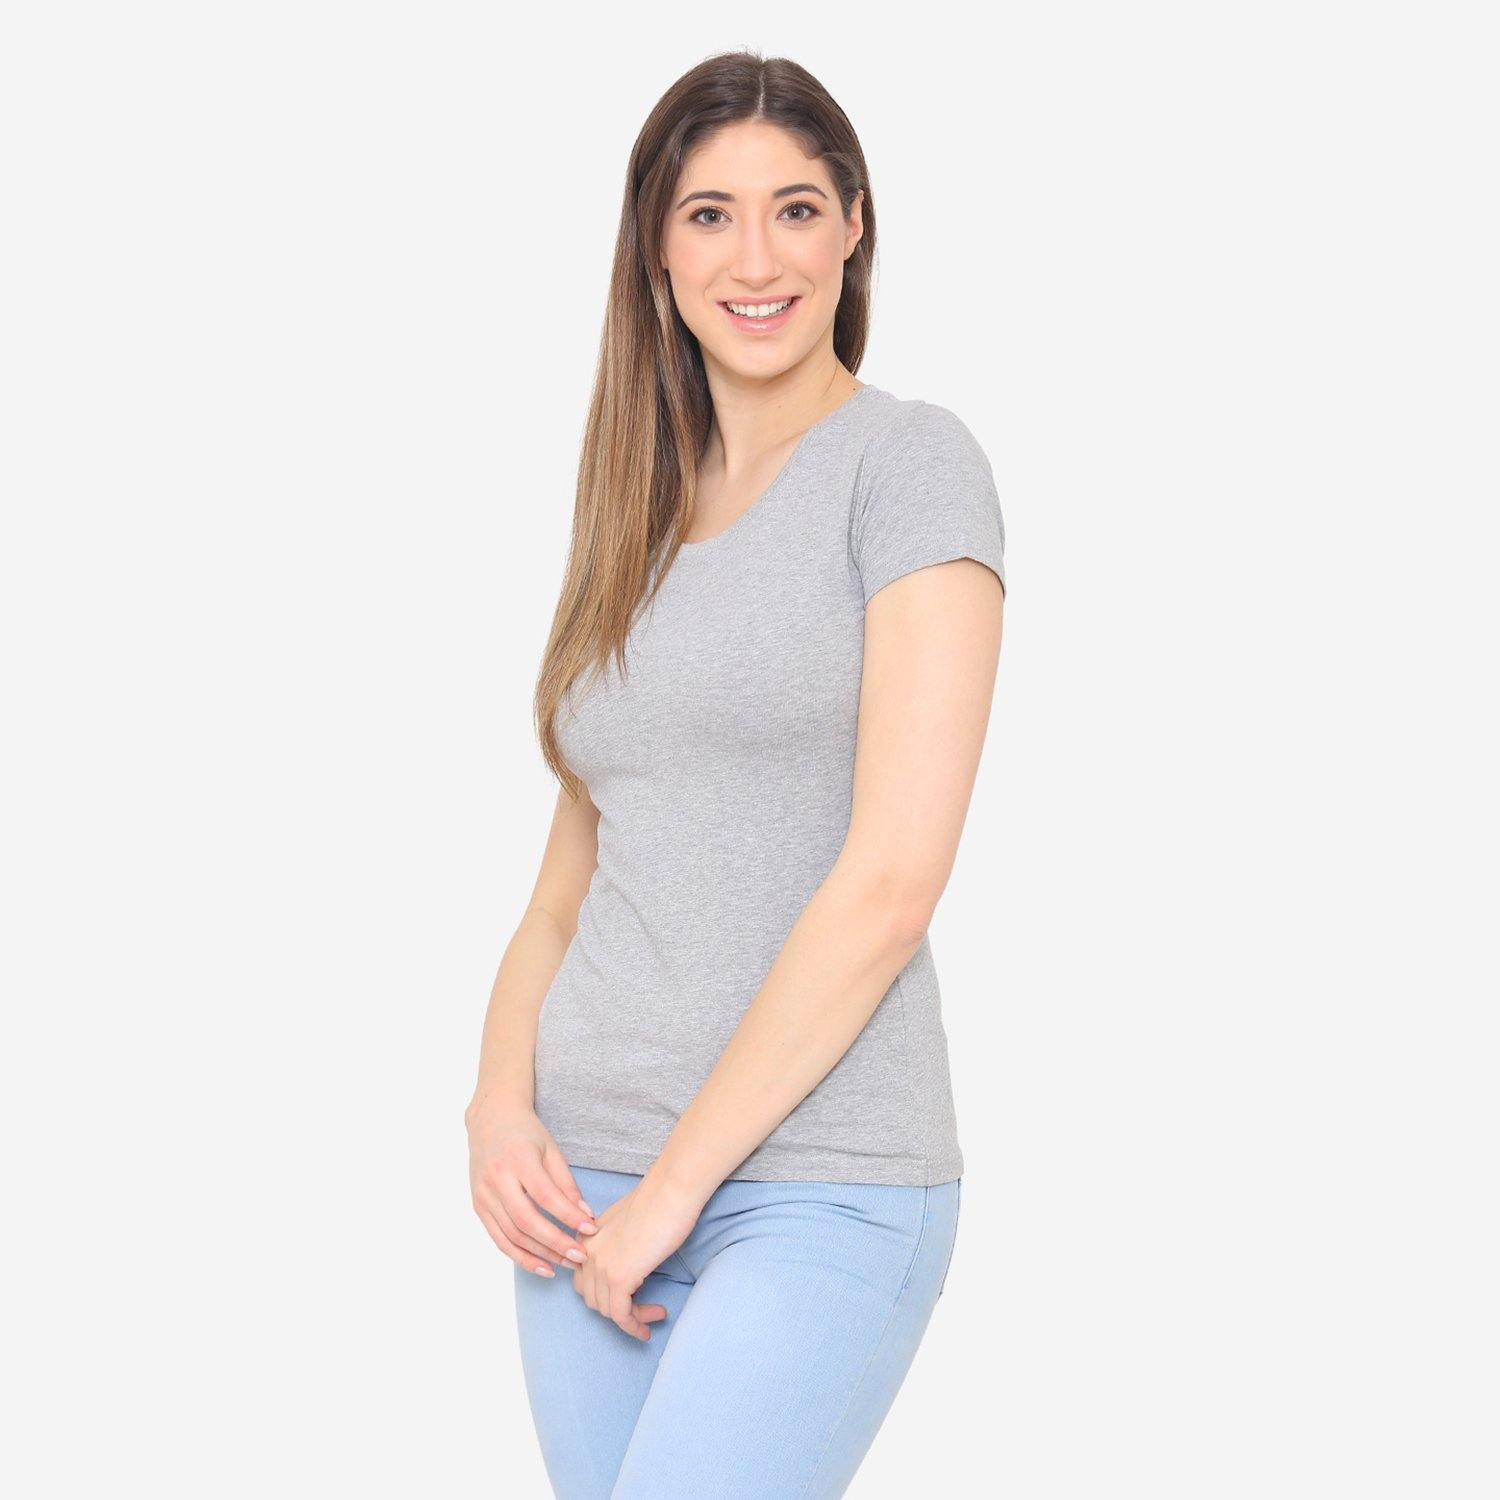 Women's Plain Casual Half Sleeve T-Shirt For Summer - Light Grey